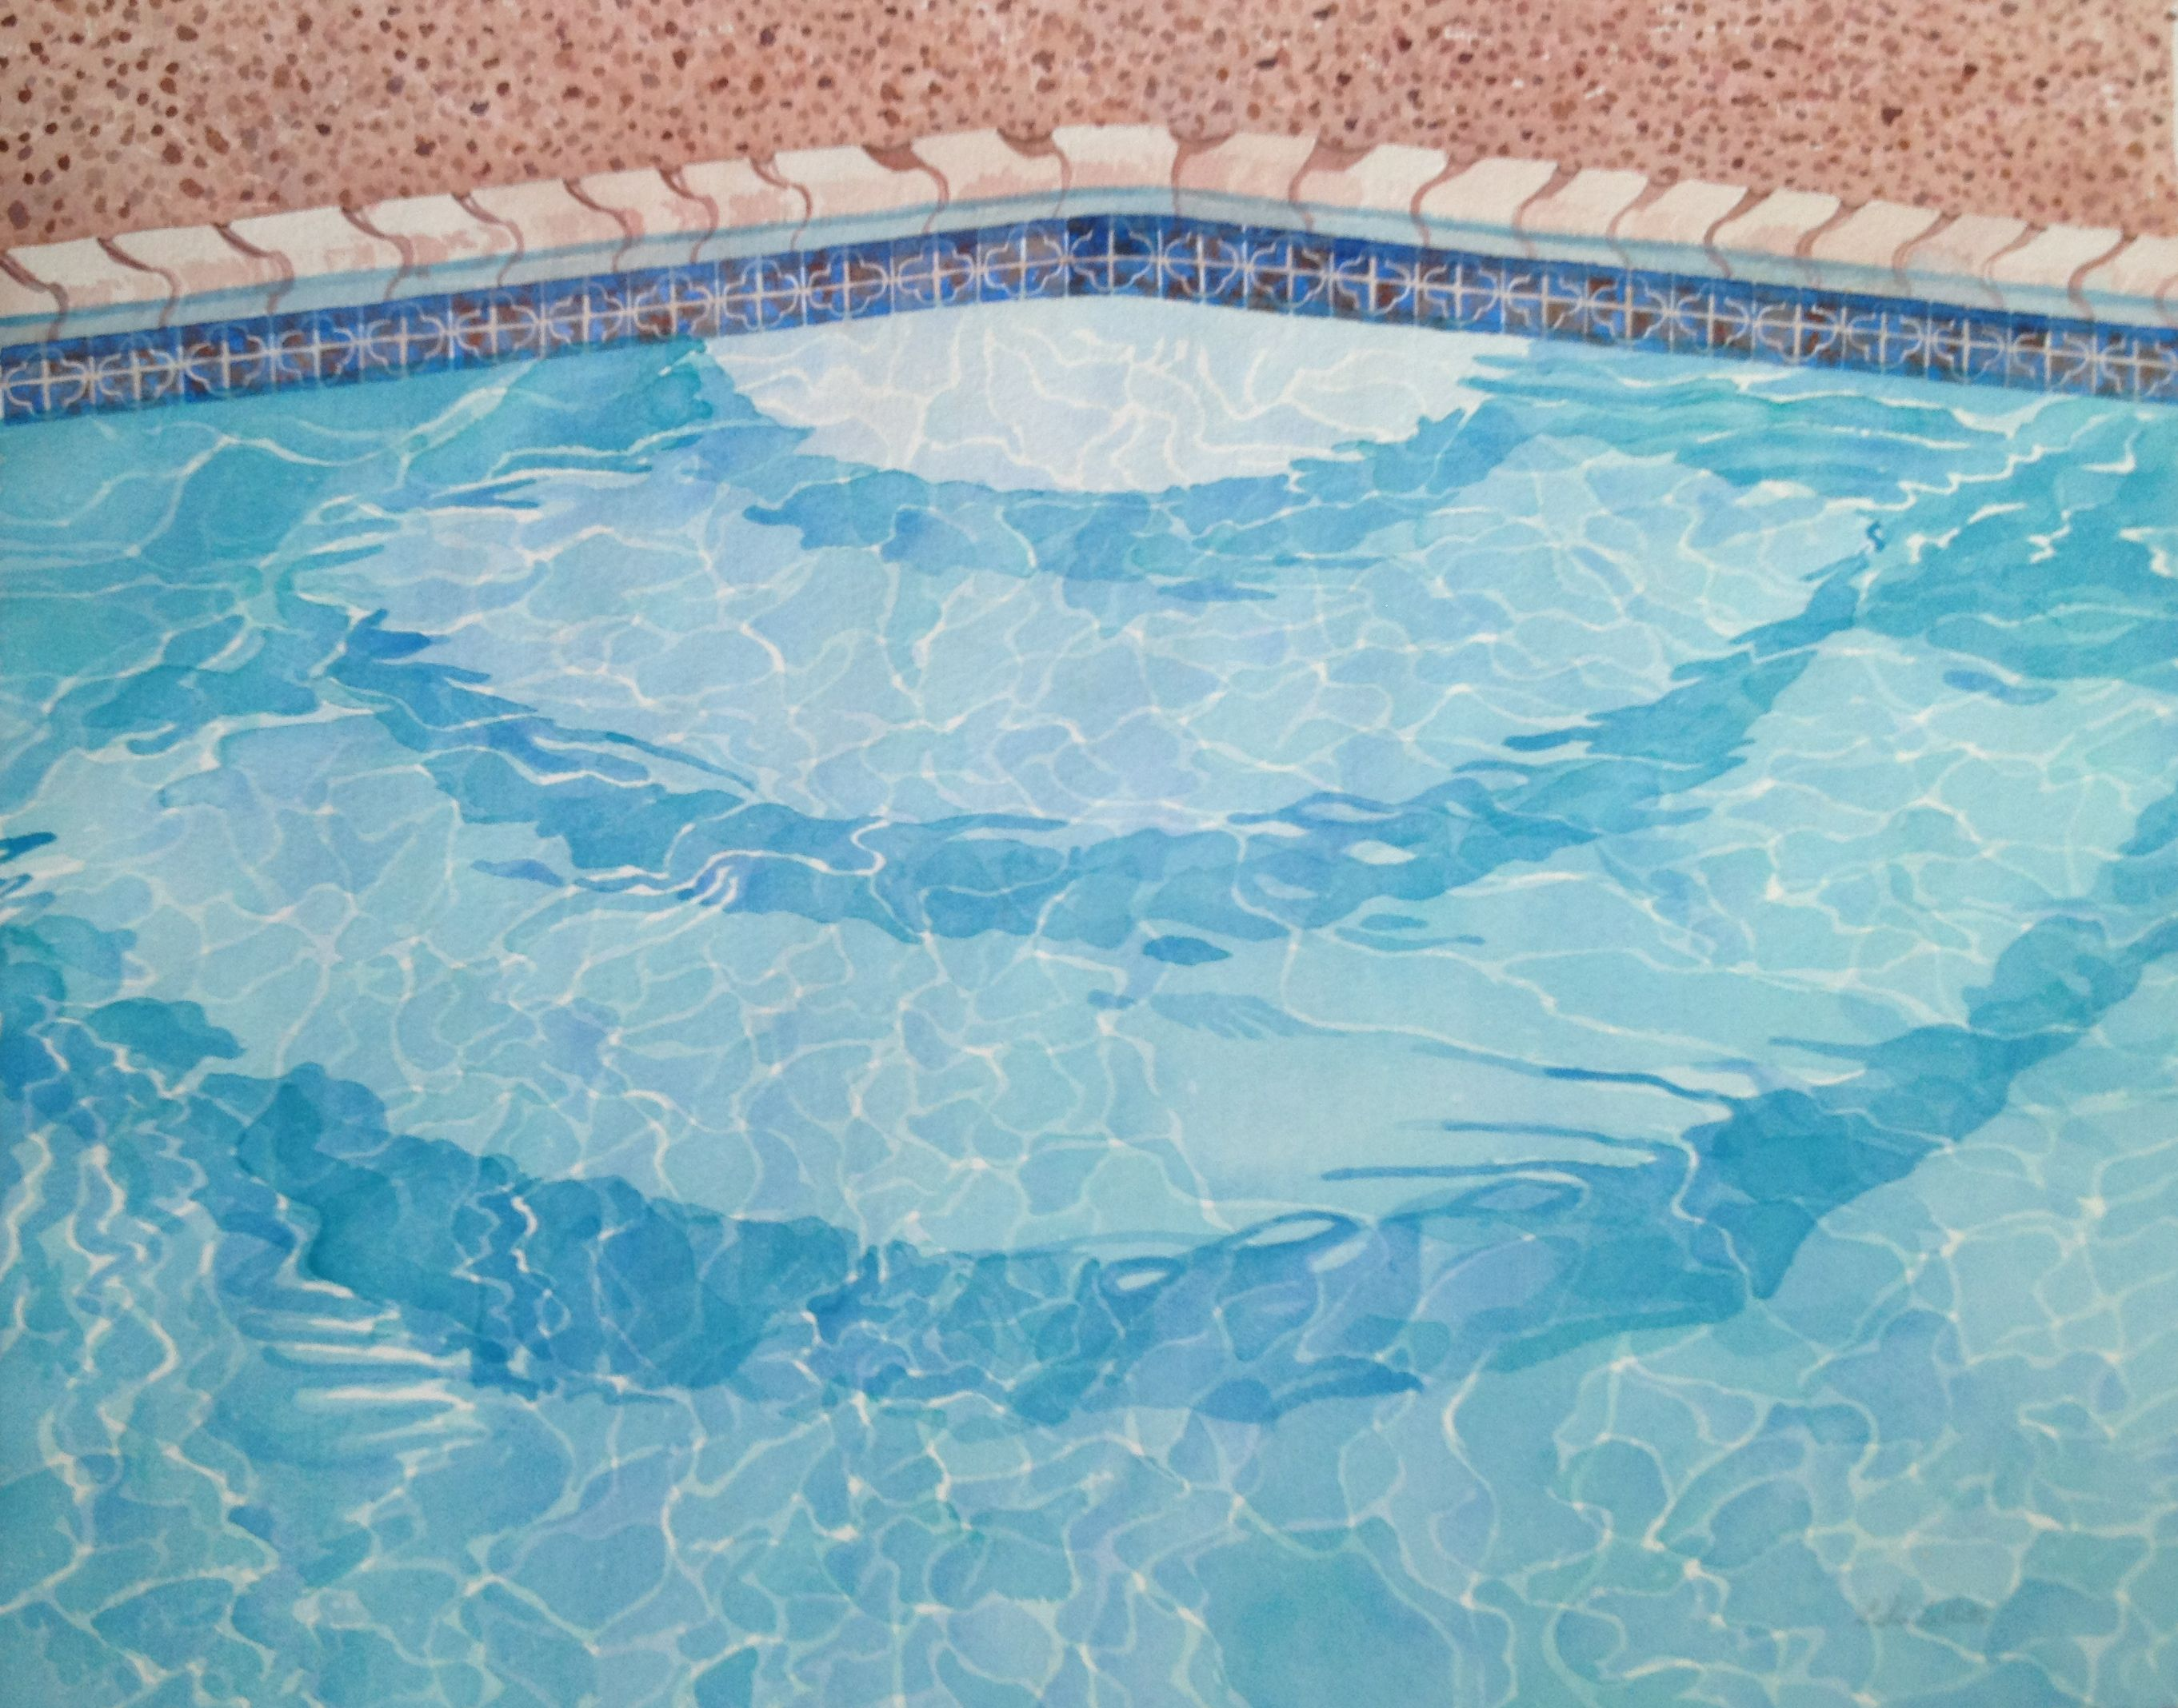 Pool Steps 16x20 Watercolor By Leslie White Www Trailheadstudios